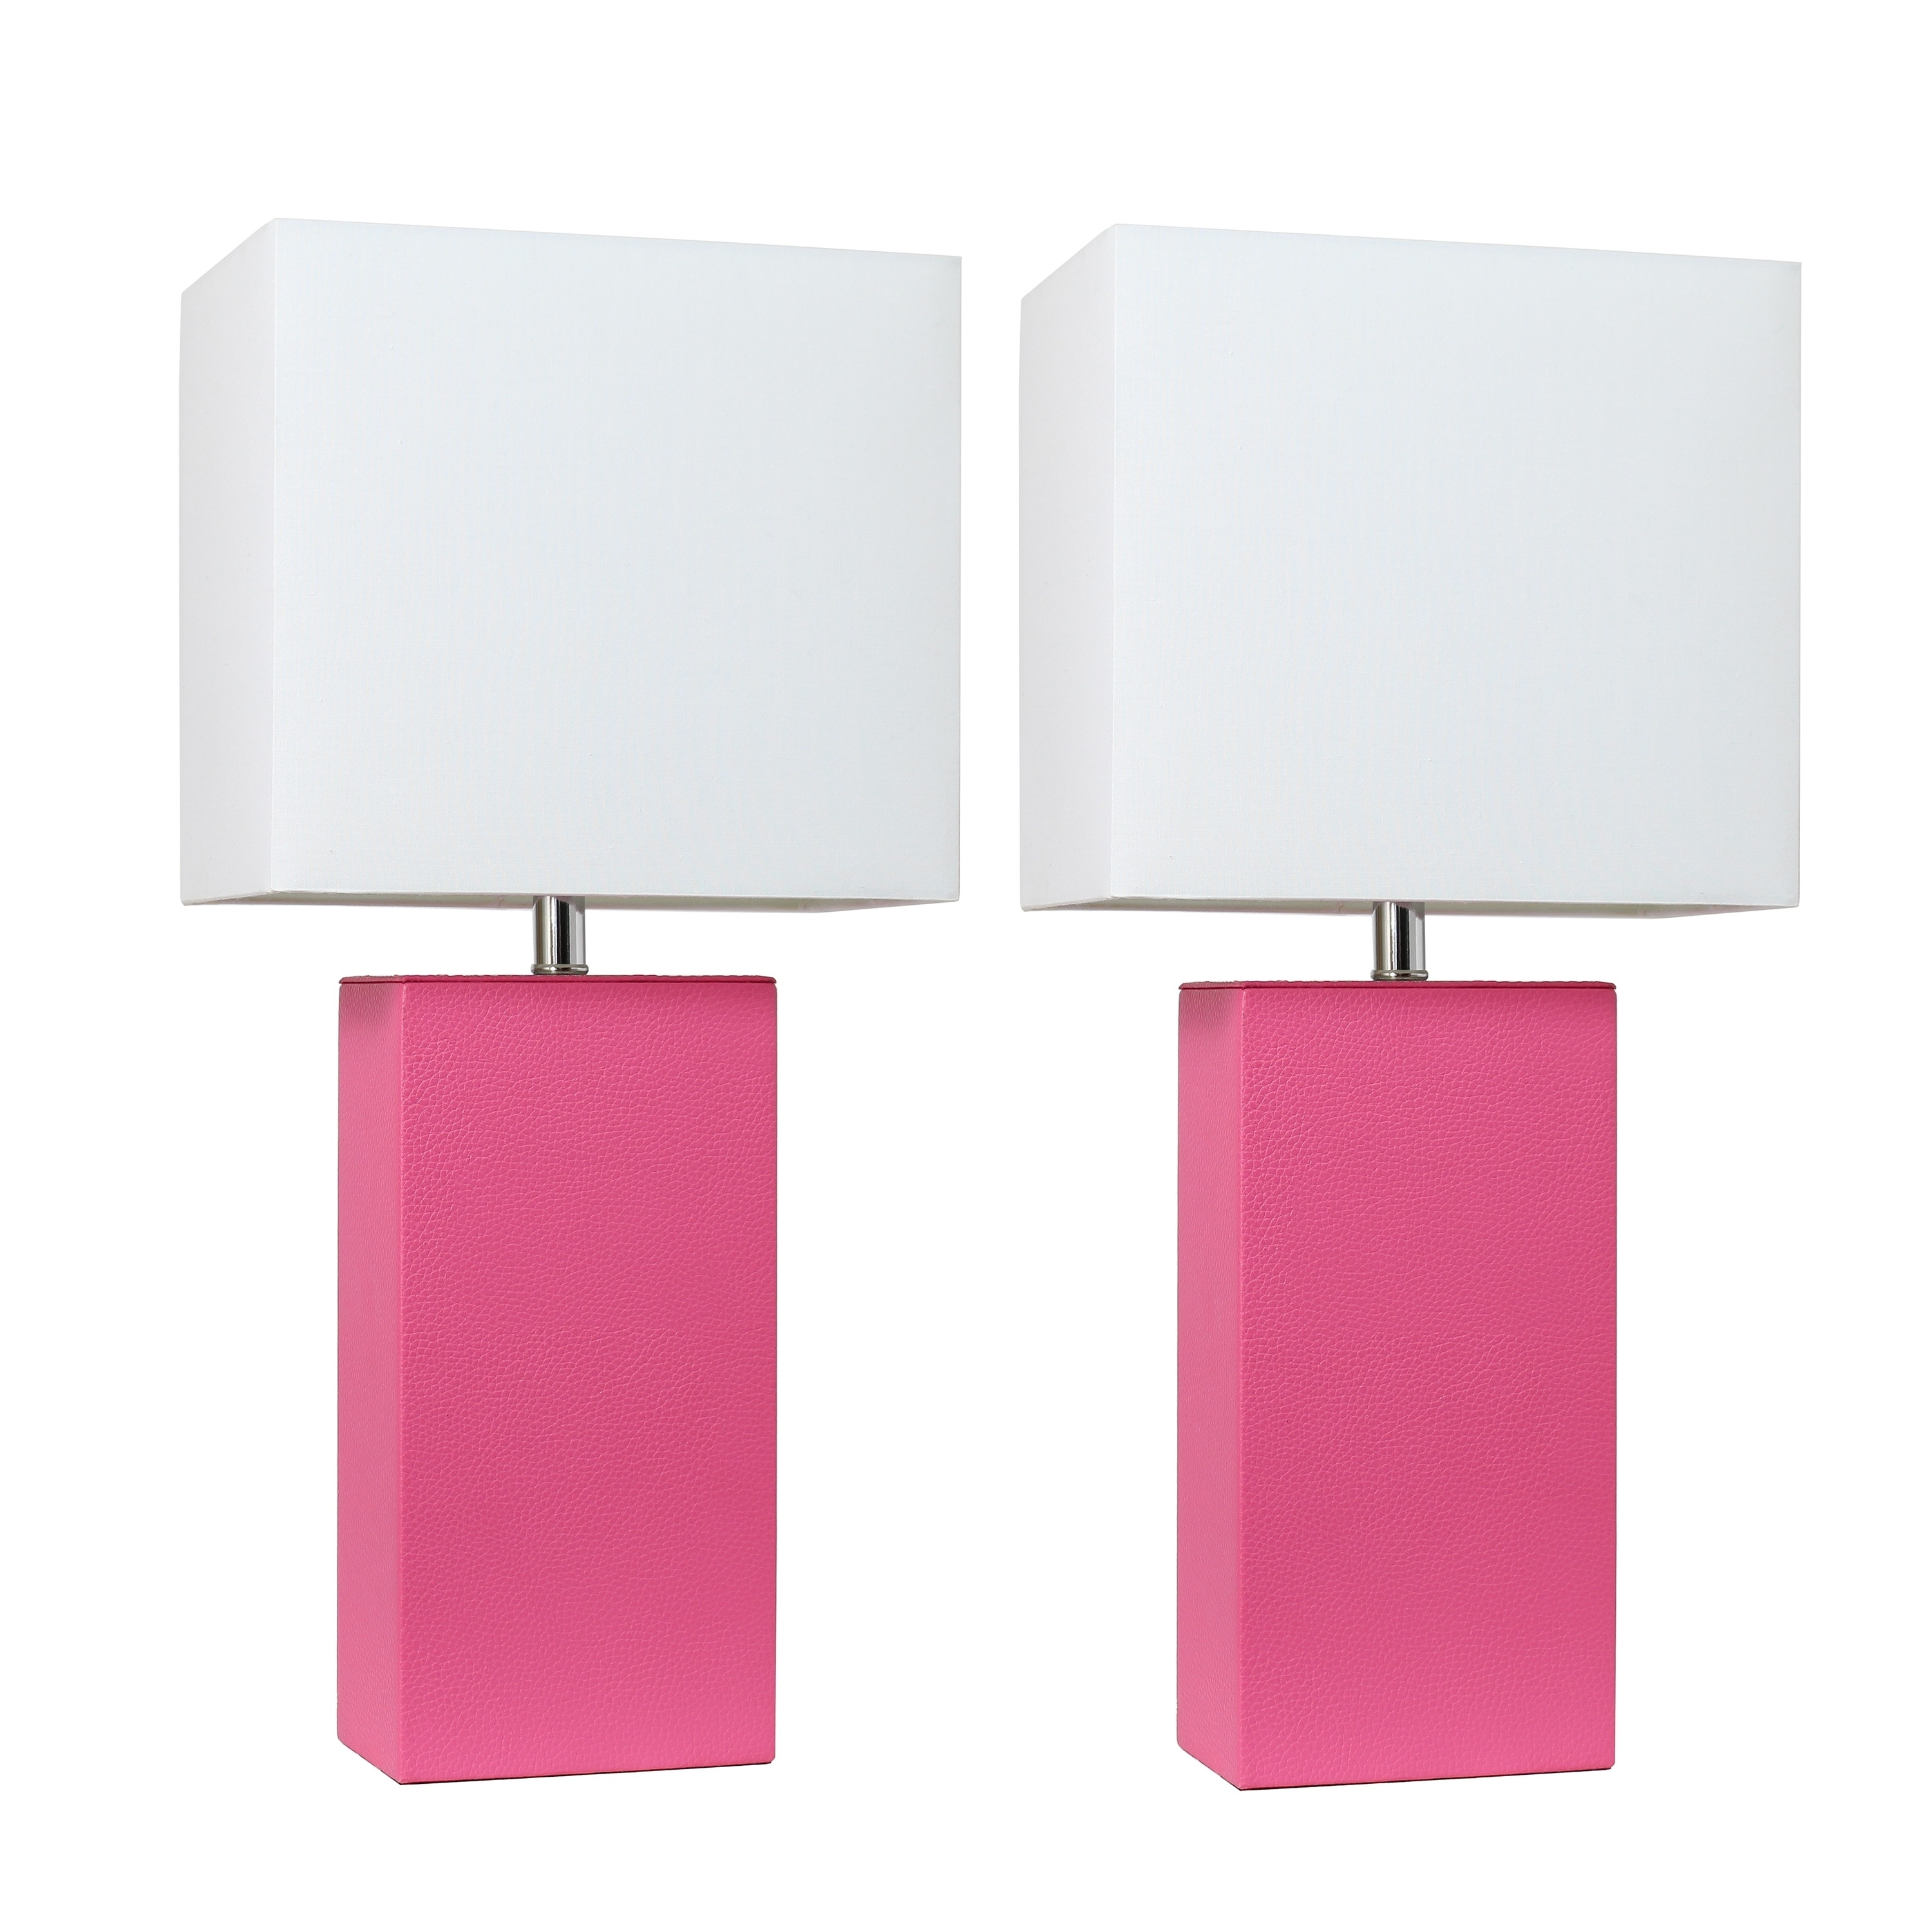 Porch Den Fairway Hot Pink Leather Table Lamps With White Fabric Shades Set Of 2 Overstock 21905701